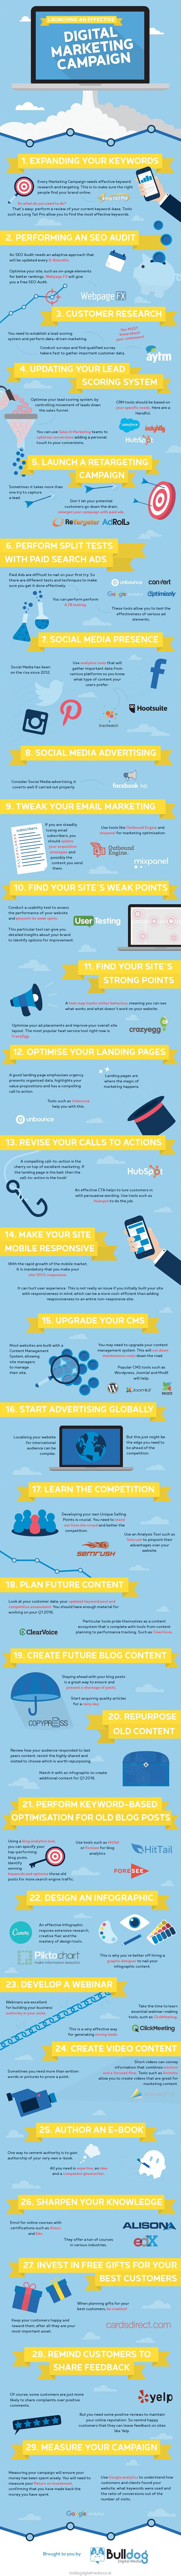 [Infographic] Dominate 2017 With This Done For You Digital Marketing Guide